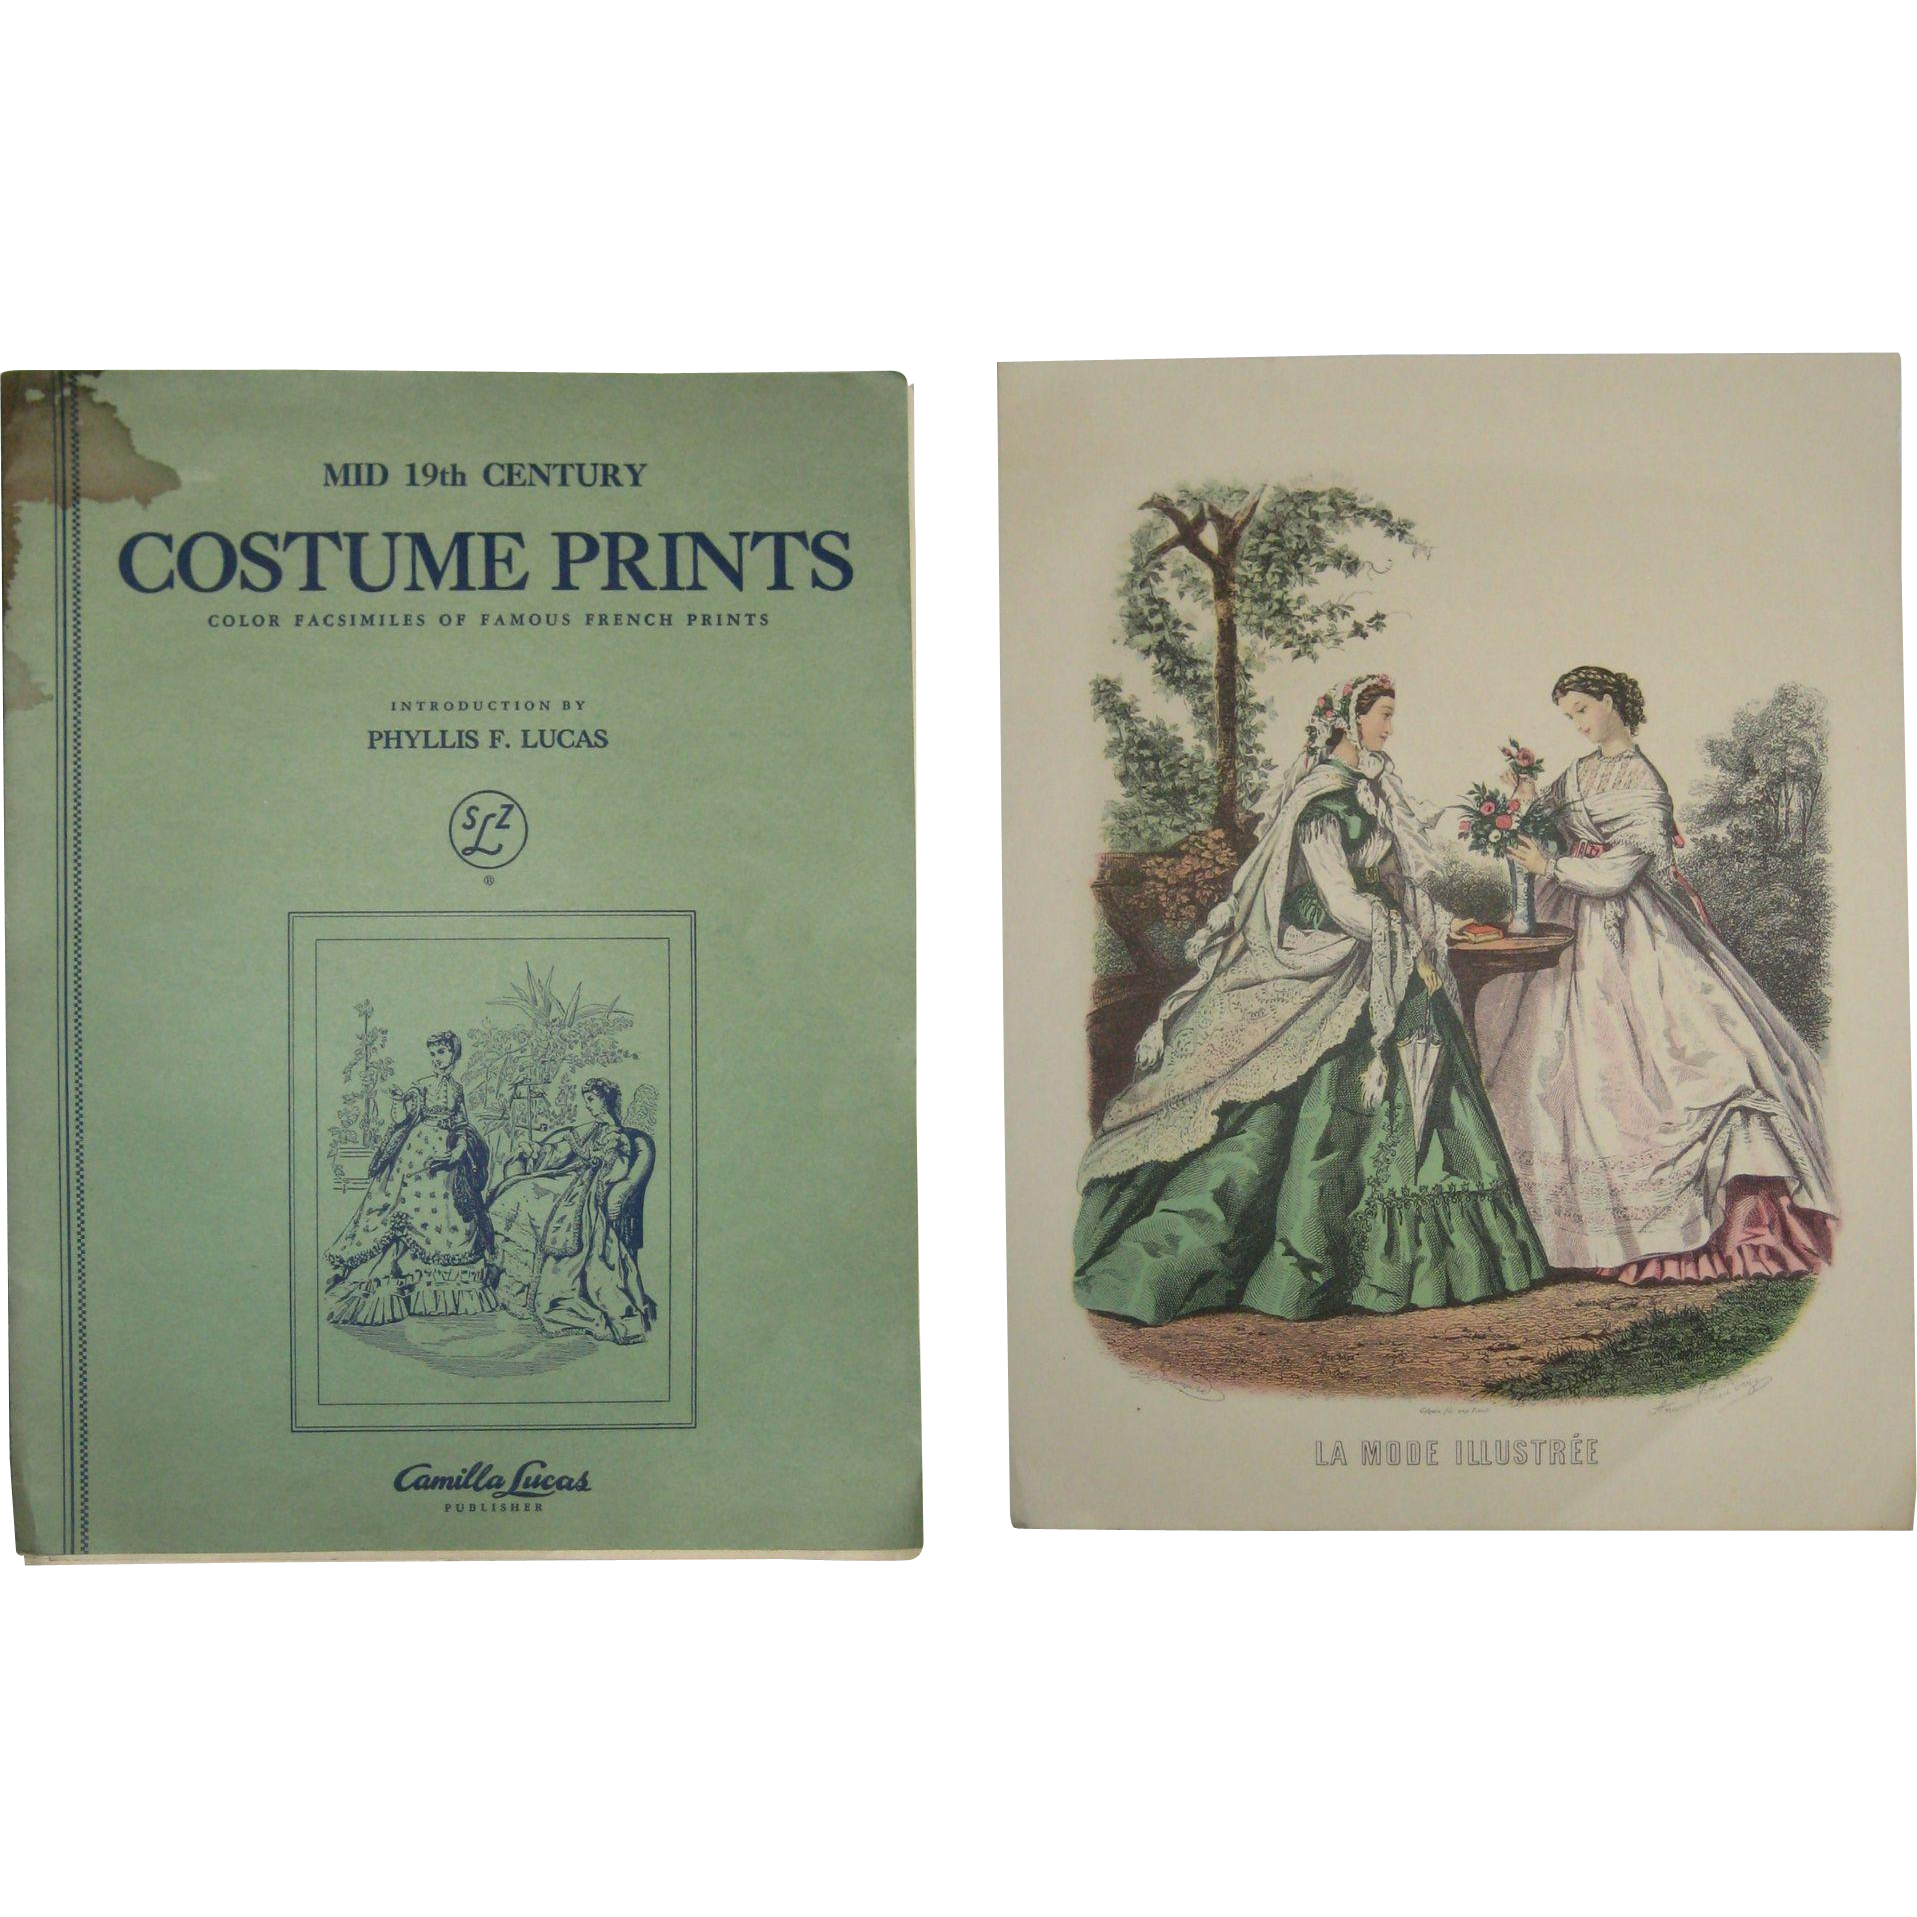 Folio of Eight Mid 19th Century French Costume Prints - Phyllis Lucas 1950